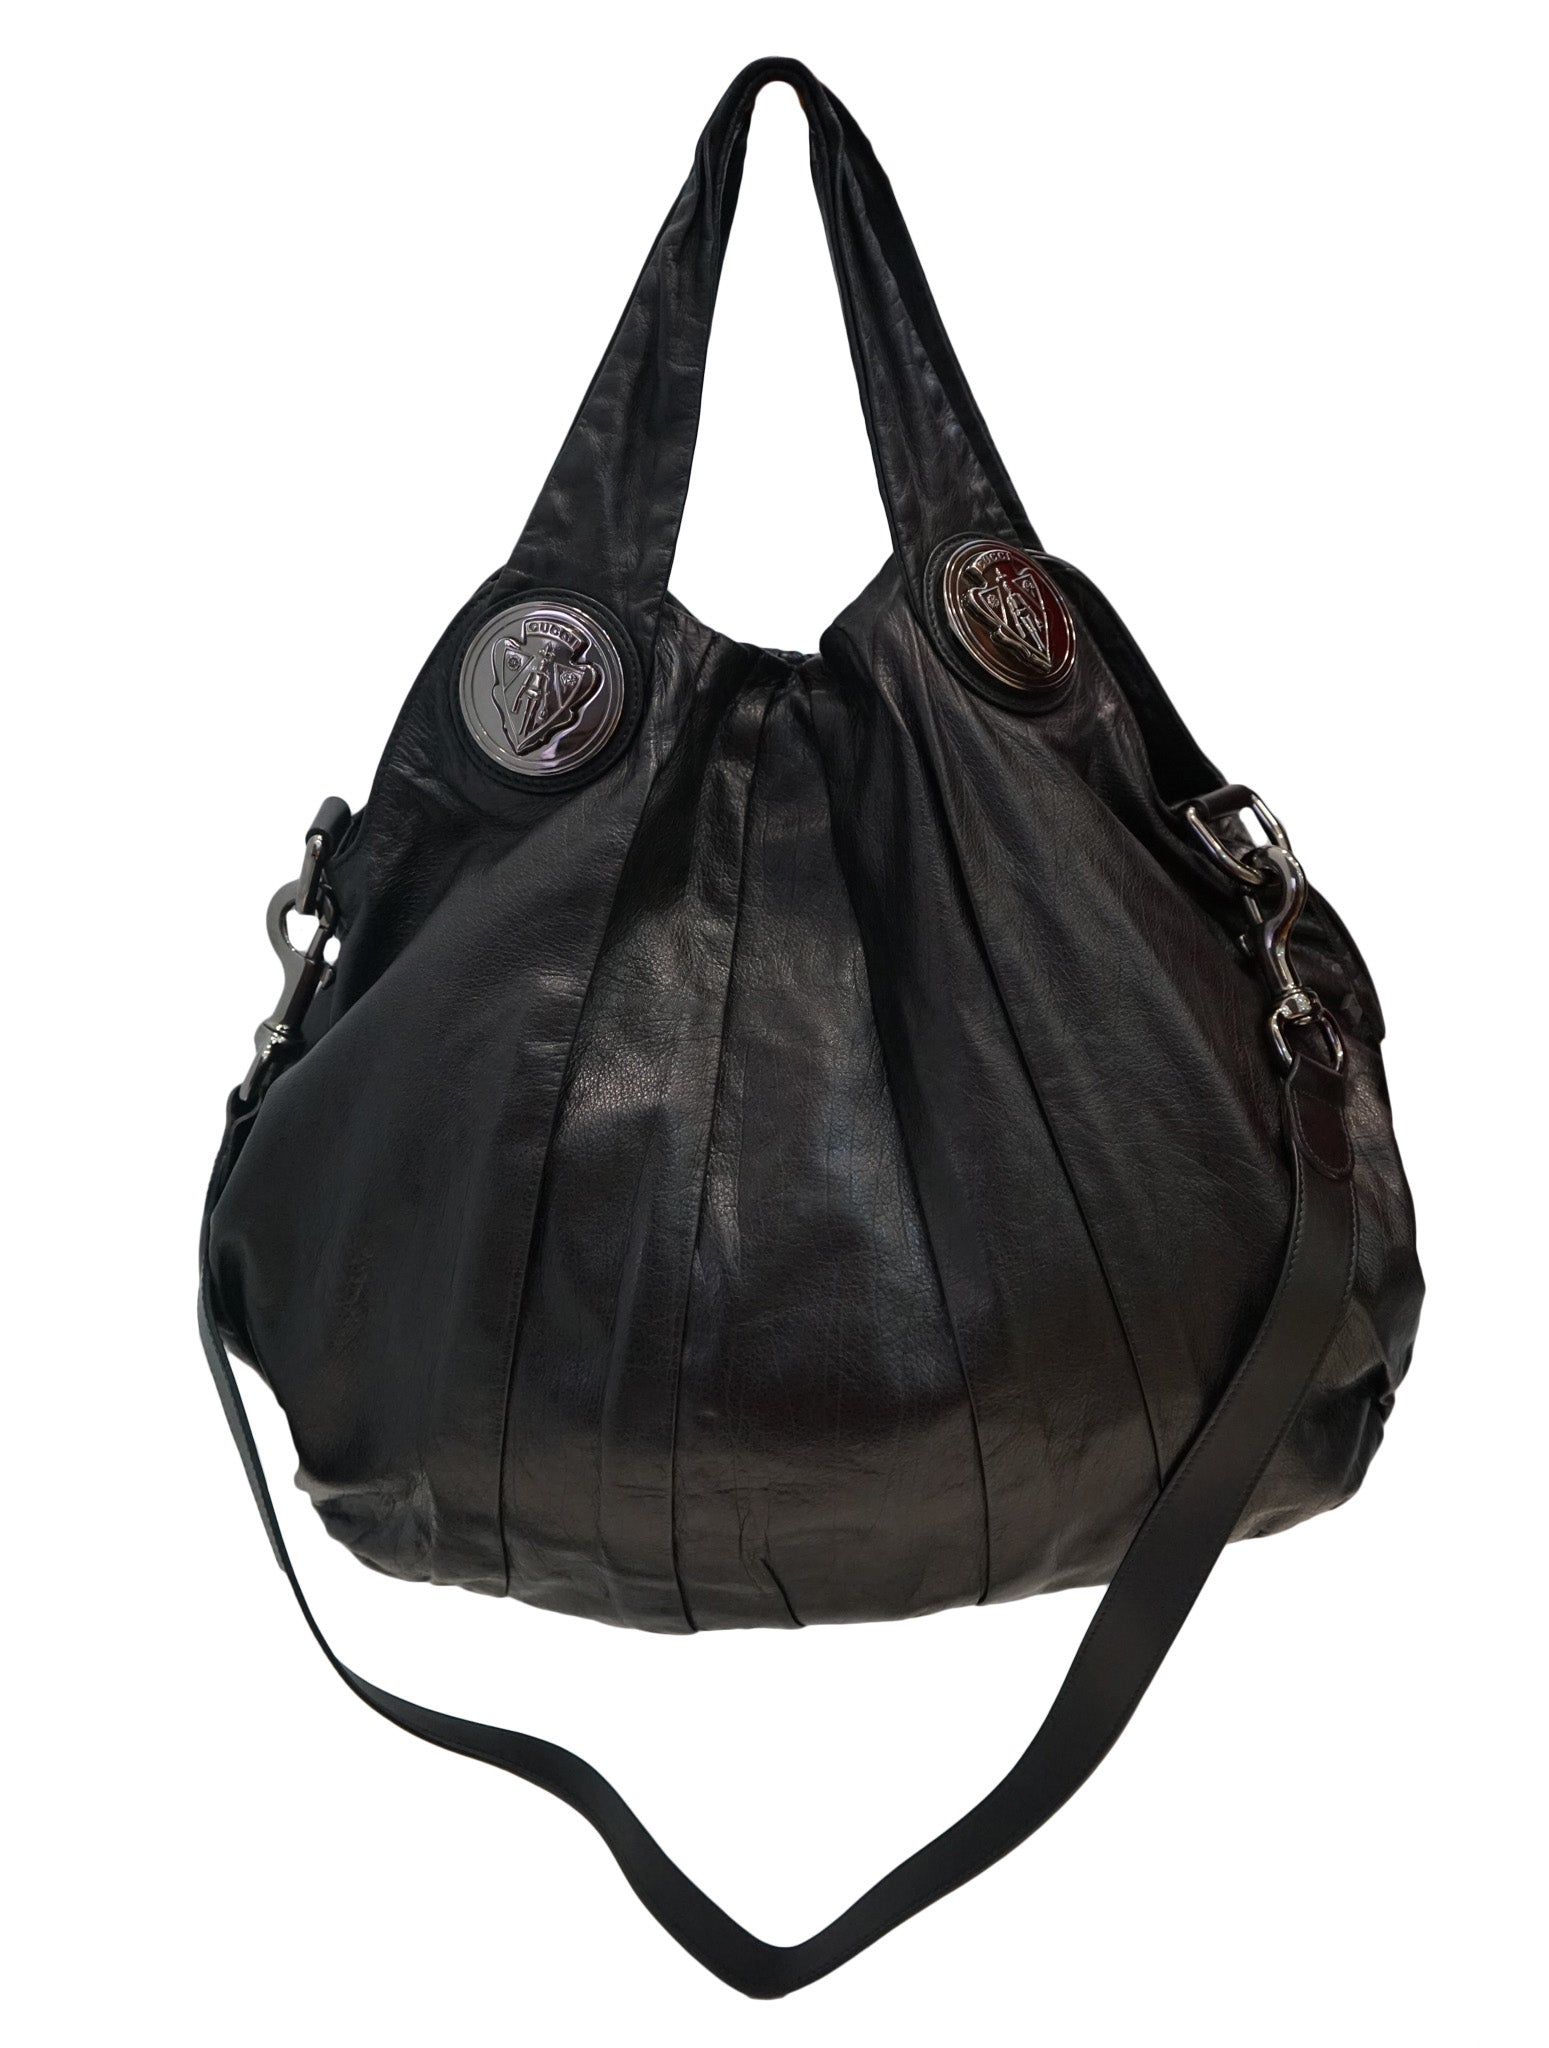 LEATHER LARGE HYSTERIA HOBO